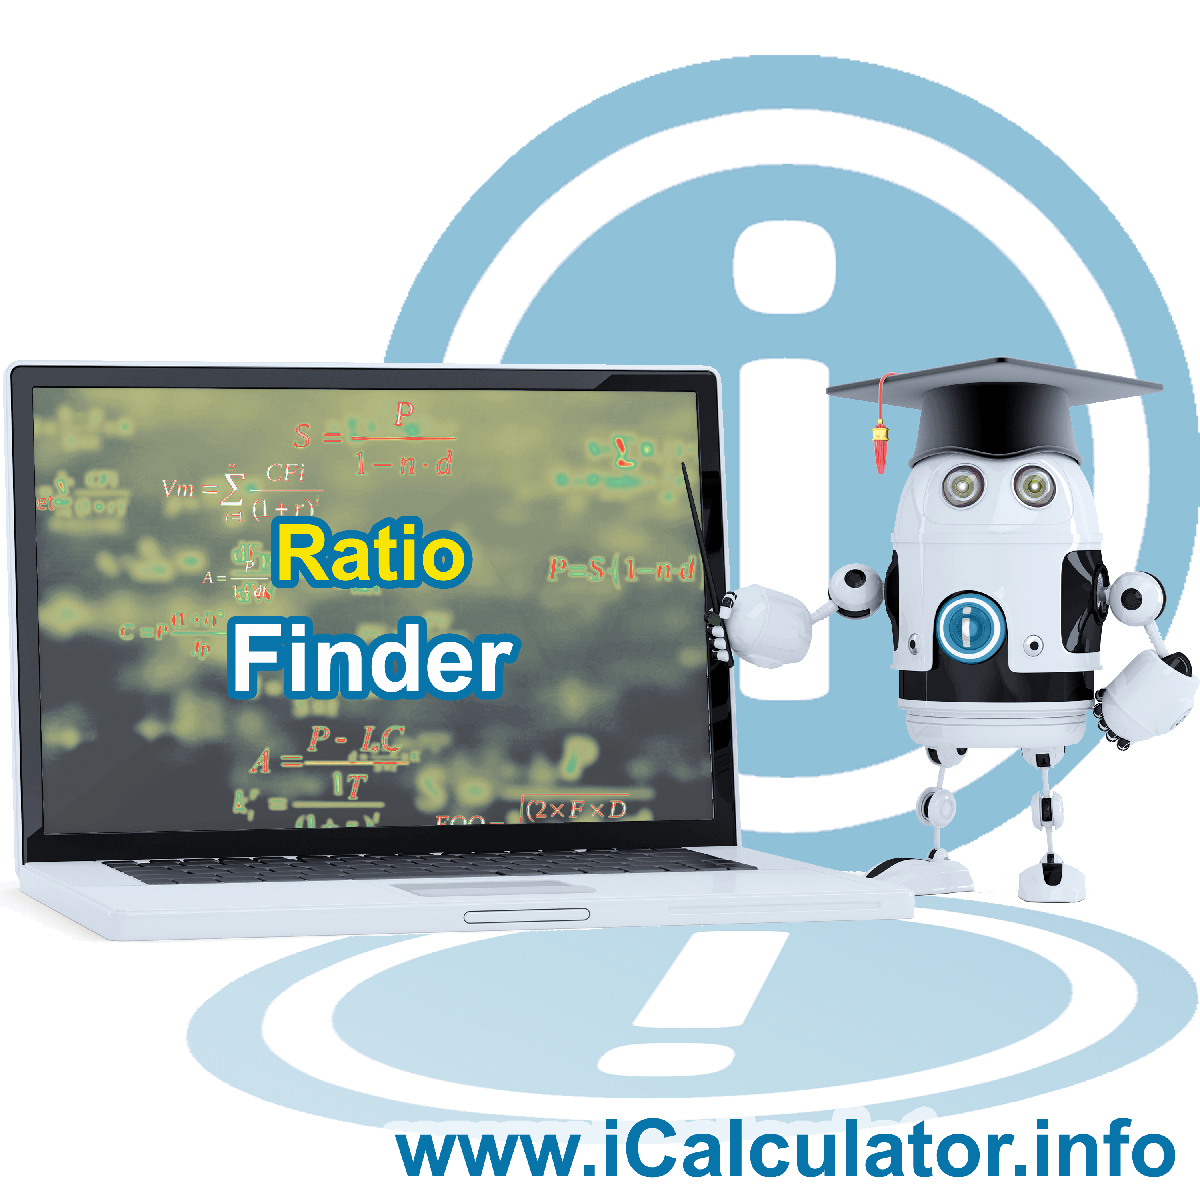 Ratio Finder. This image shows the properties and ratio finder formula for the Ratio Finder